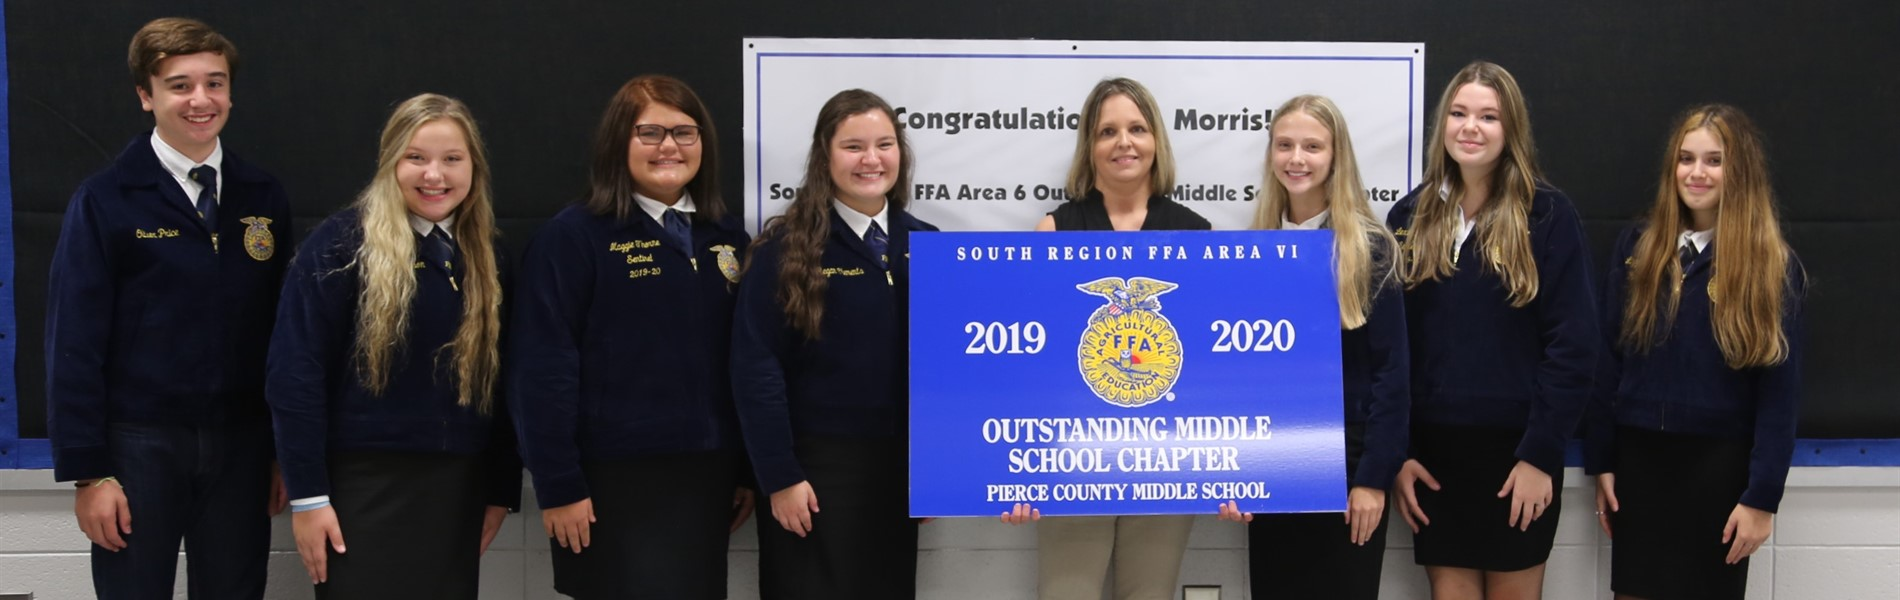 Outstanding Middle School Chapter